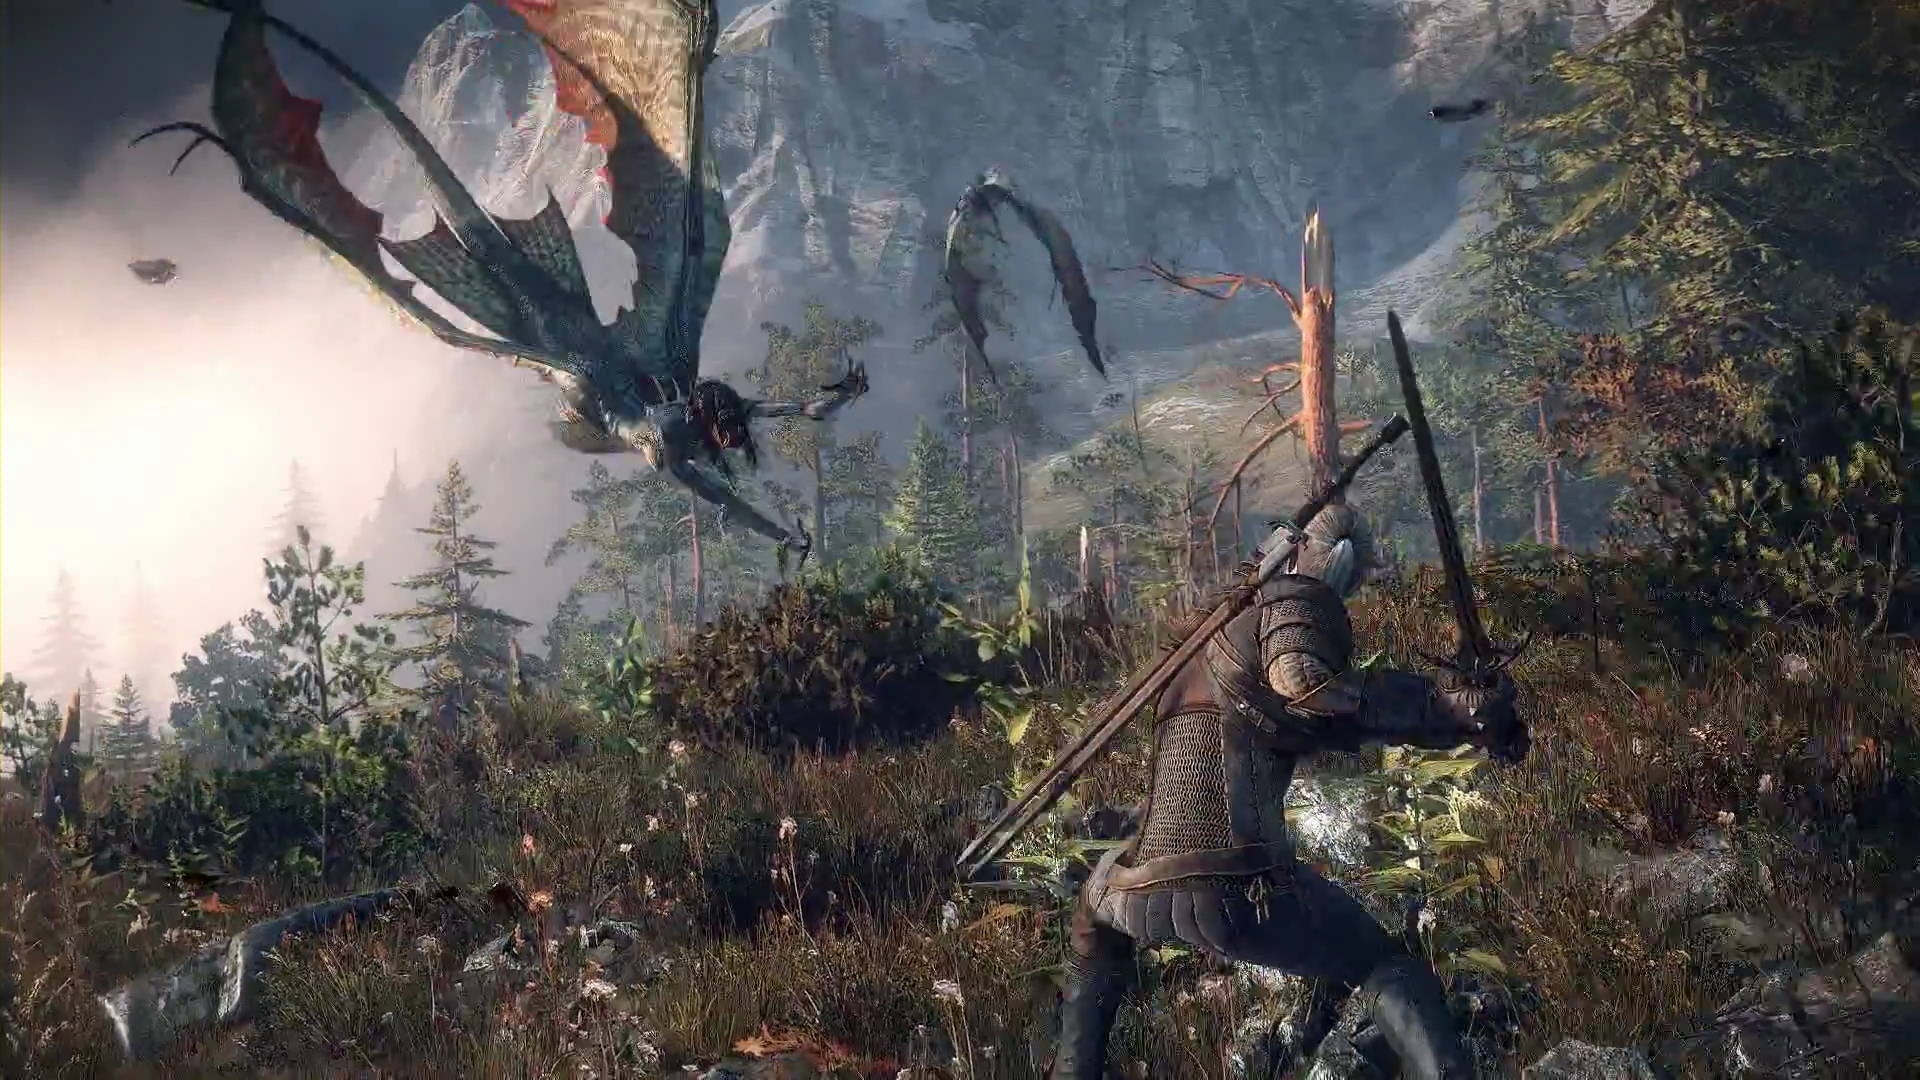 the Collection The Witcher Video Game The Witcher 3 Wild Hunt 485940 1920x1080